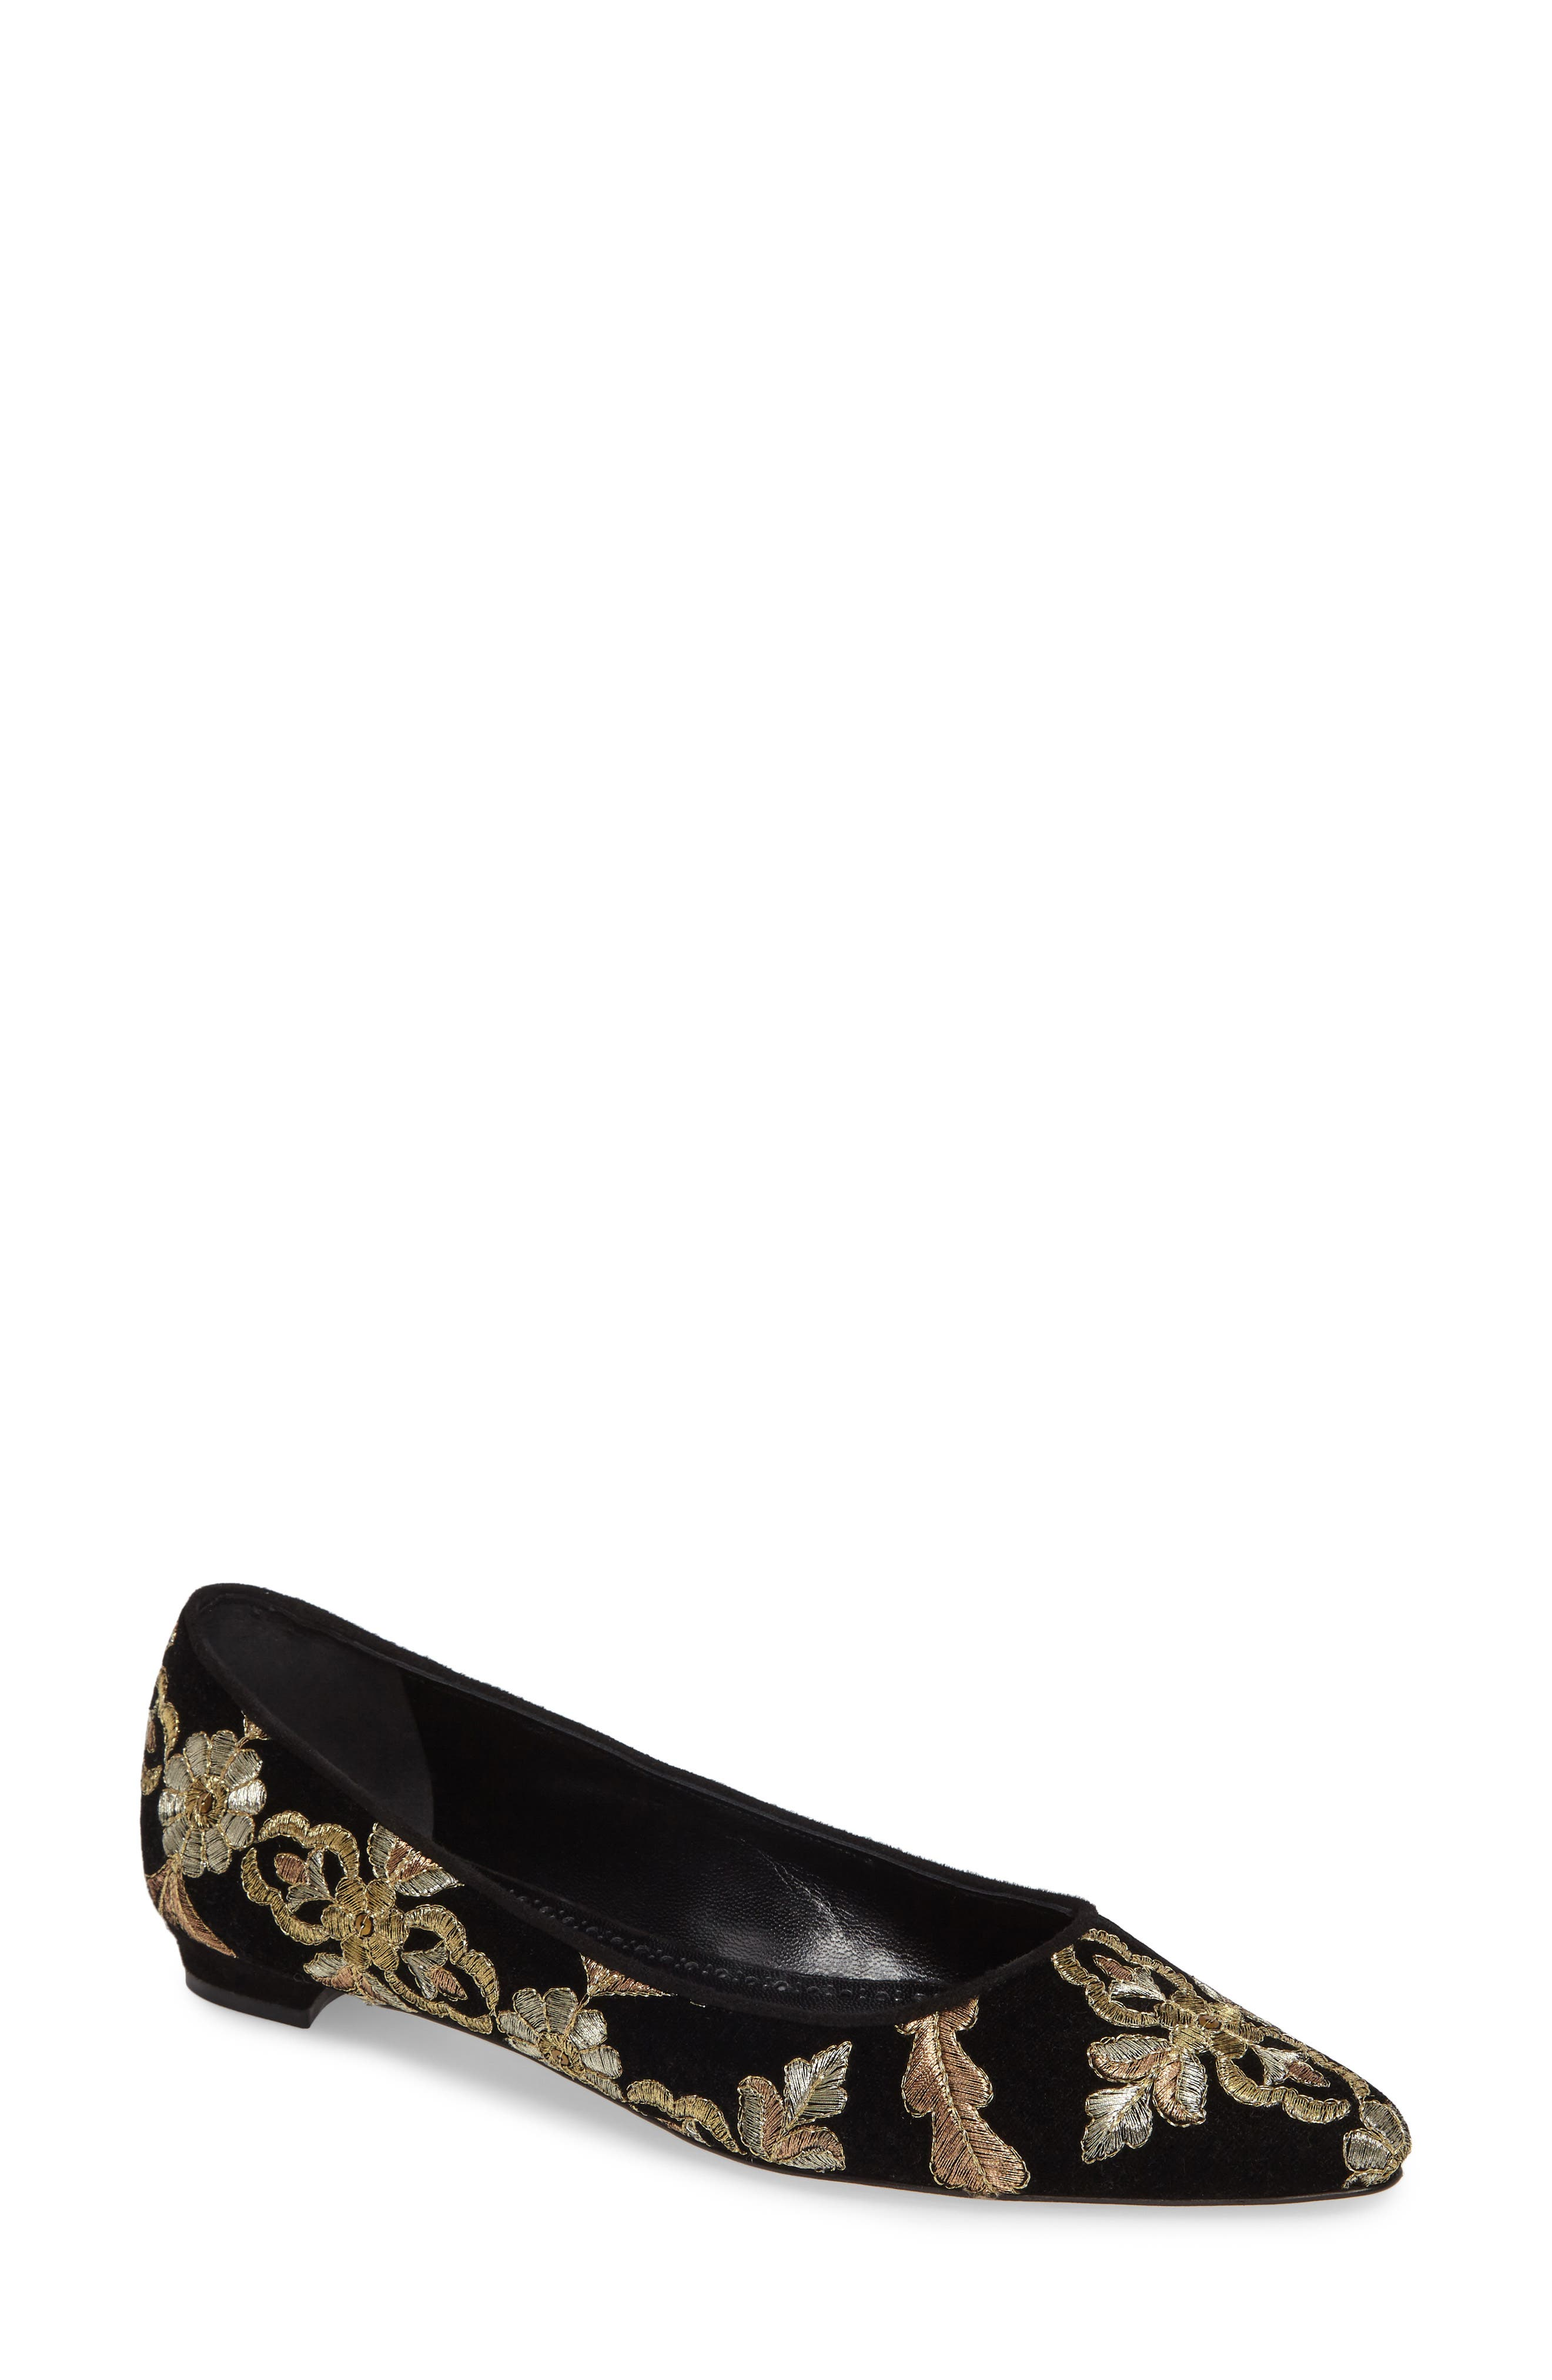 Tittermo Floral Embroidered Ballet Flat,                         Main,                         color, 001